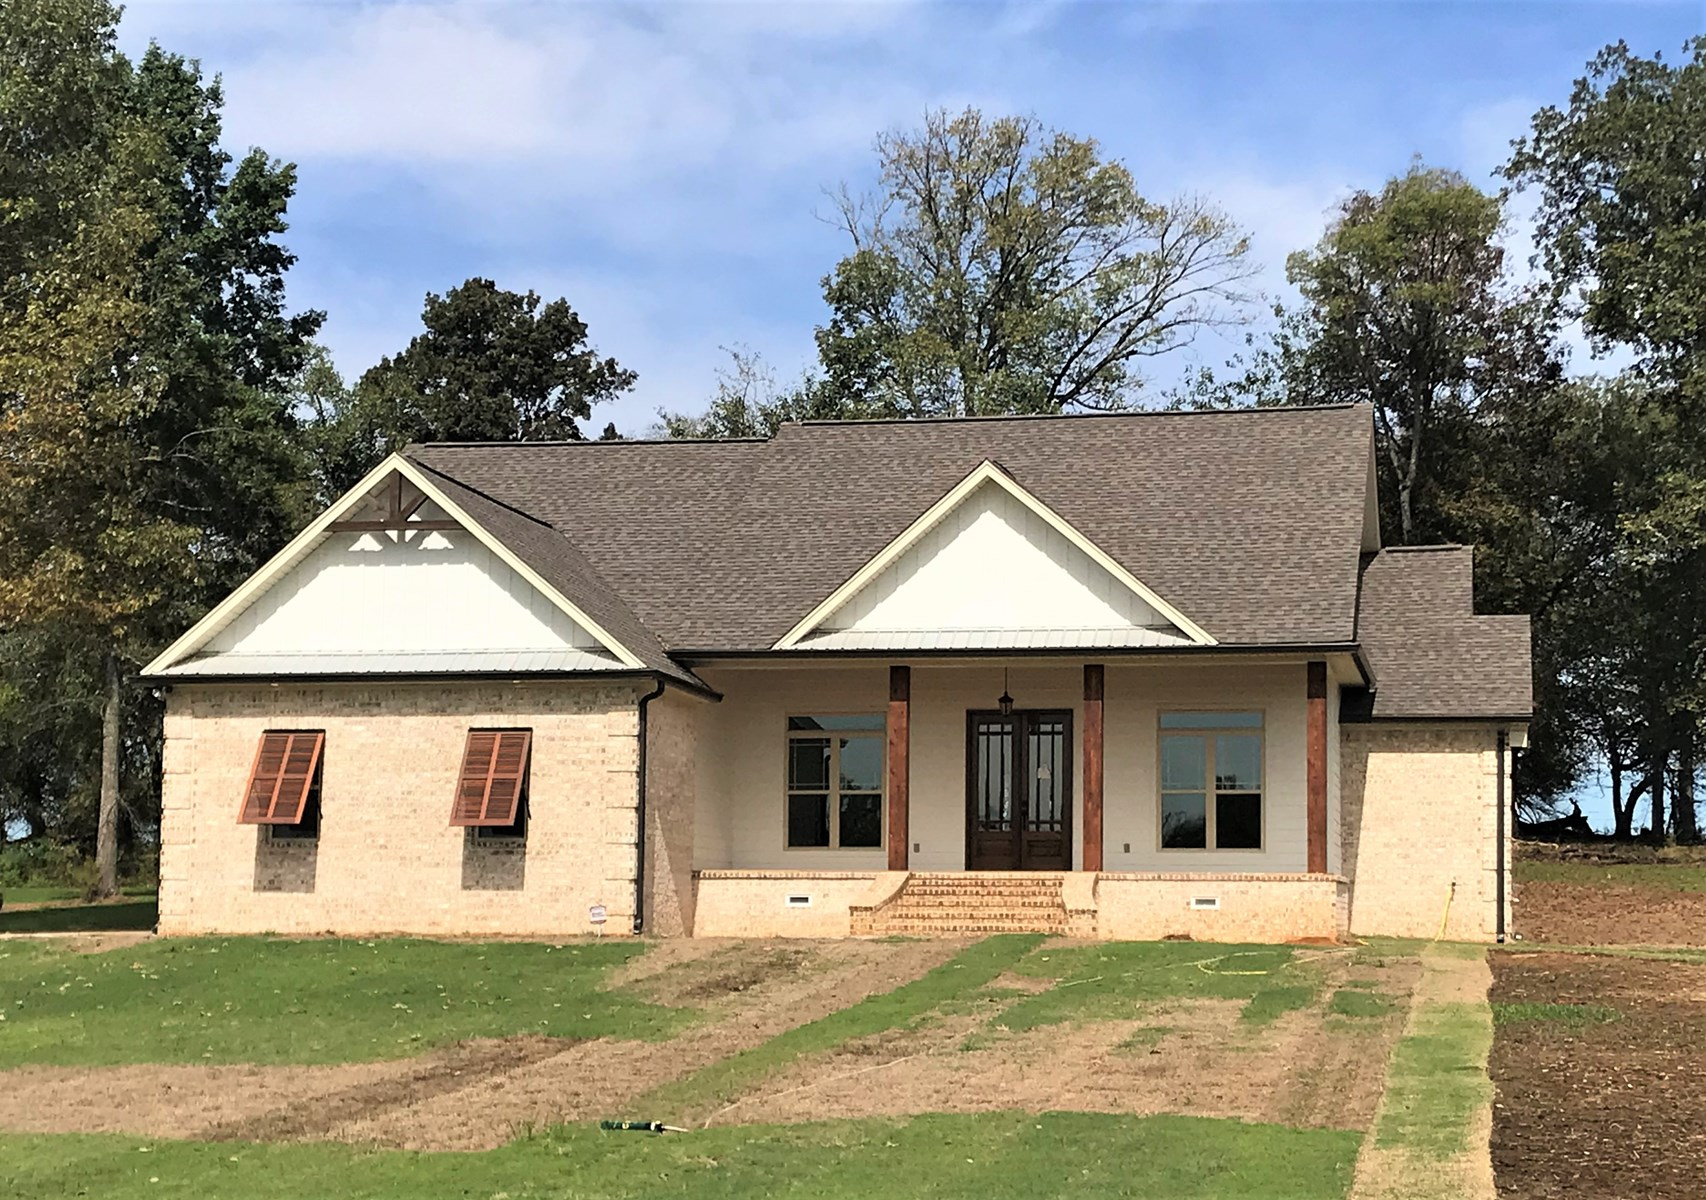 271 IRONWOOD DR, STARKVILLE, MS 39759: NEW CONSTRUCTION